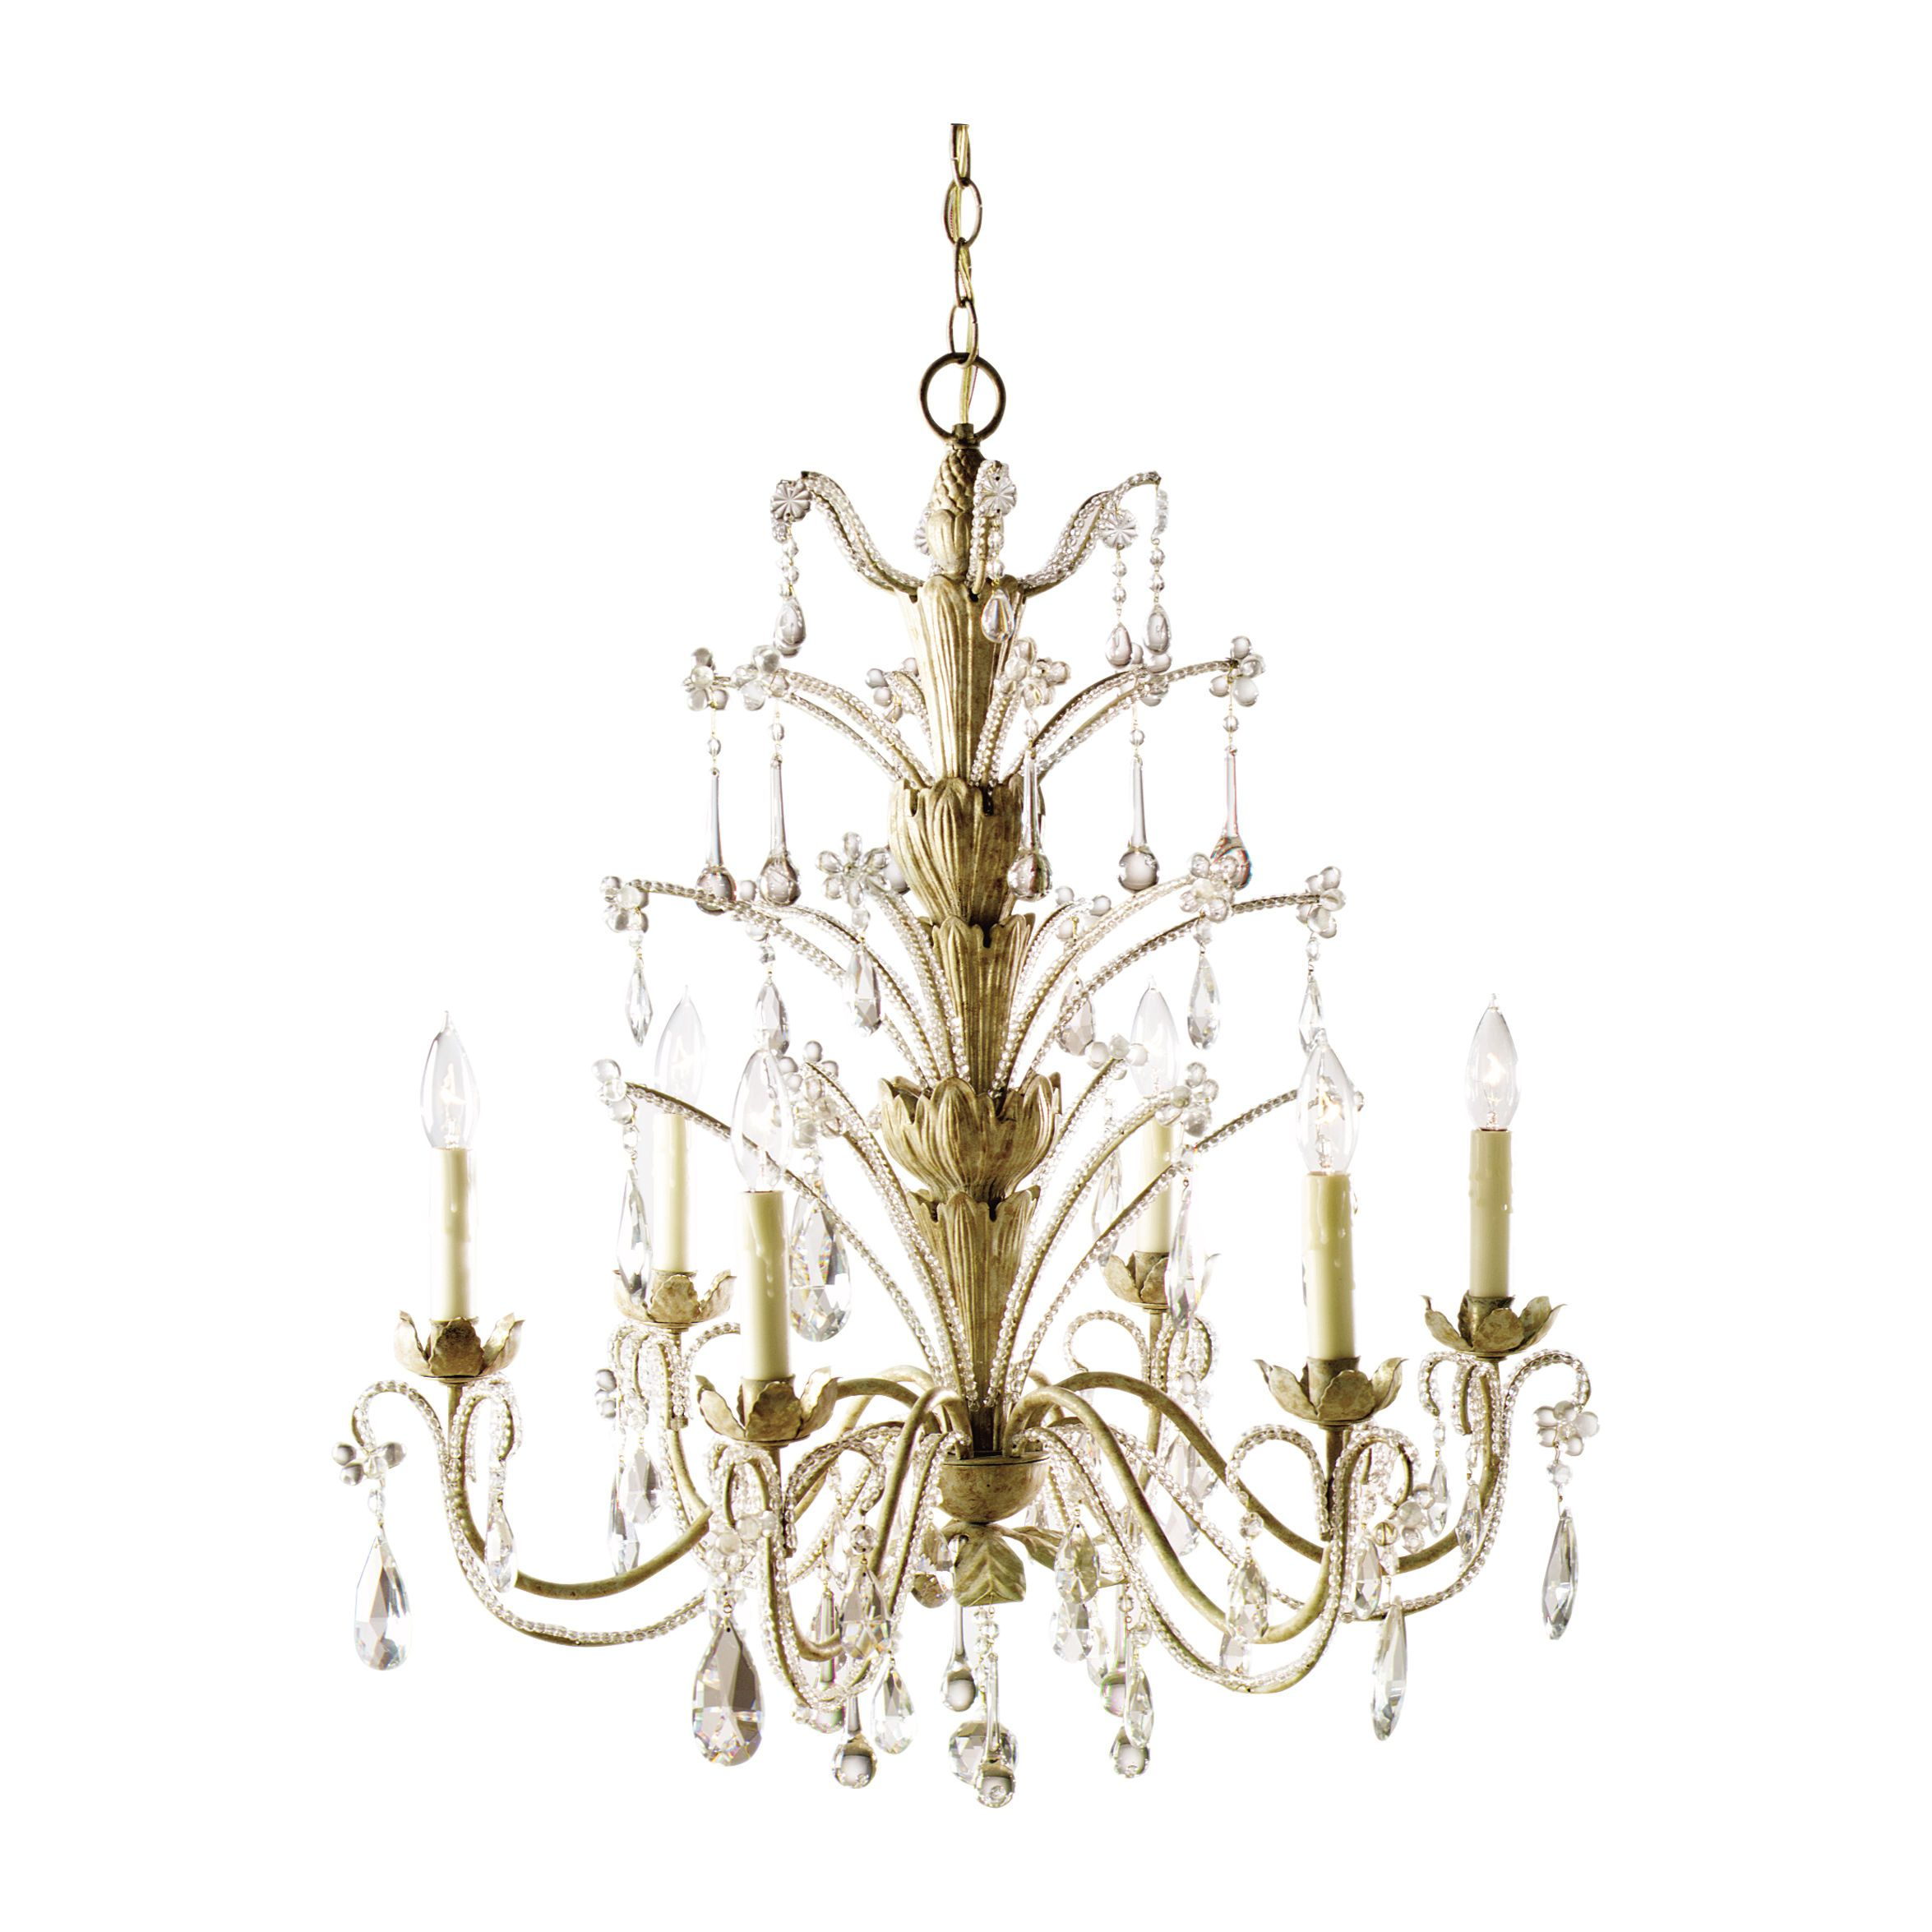 Six Light Elizabeth Chandelier Ethan Allen US I was lucky enough